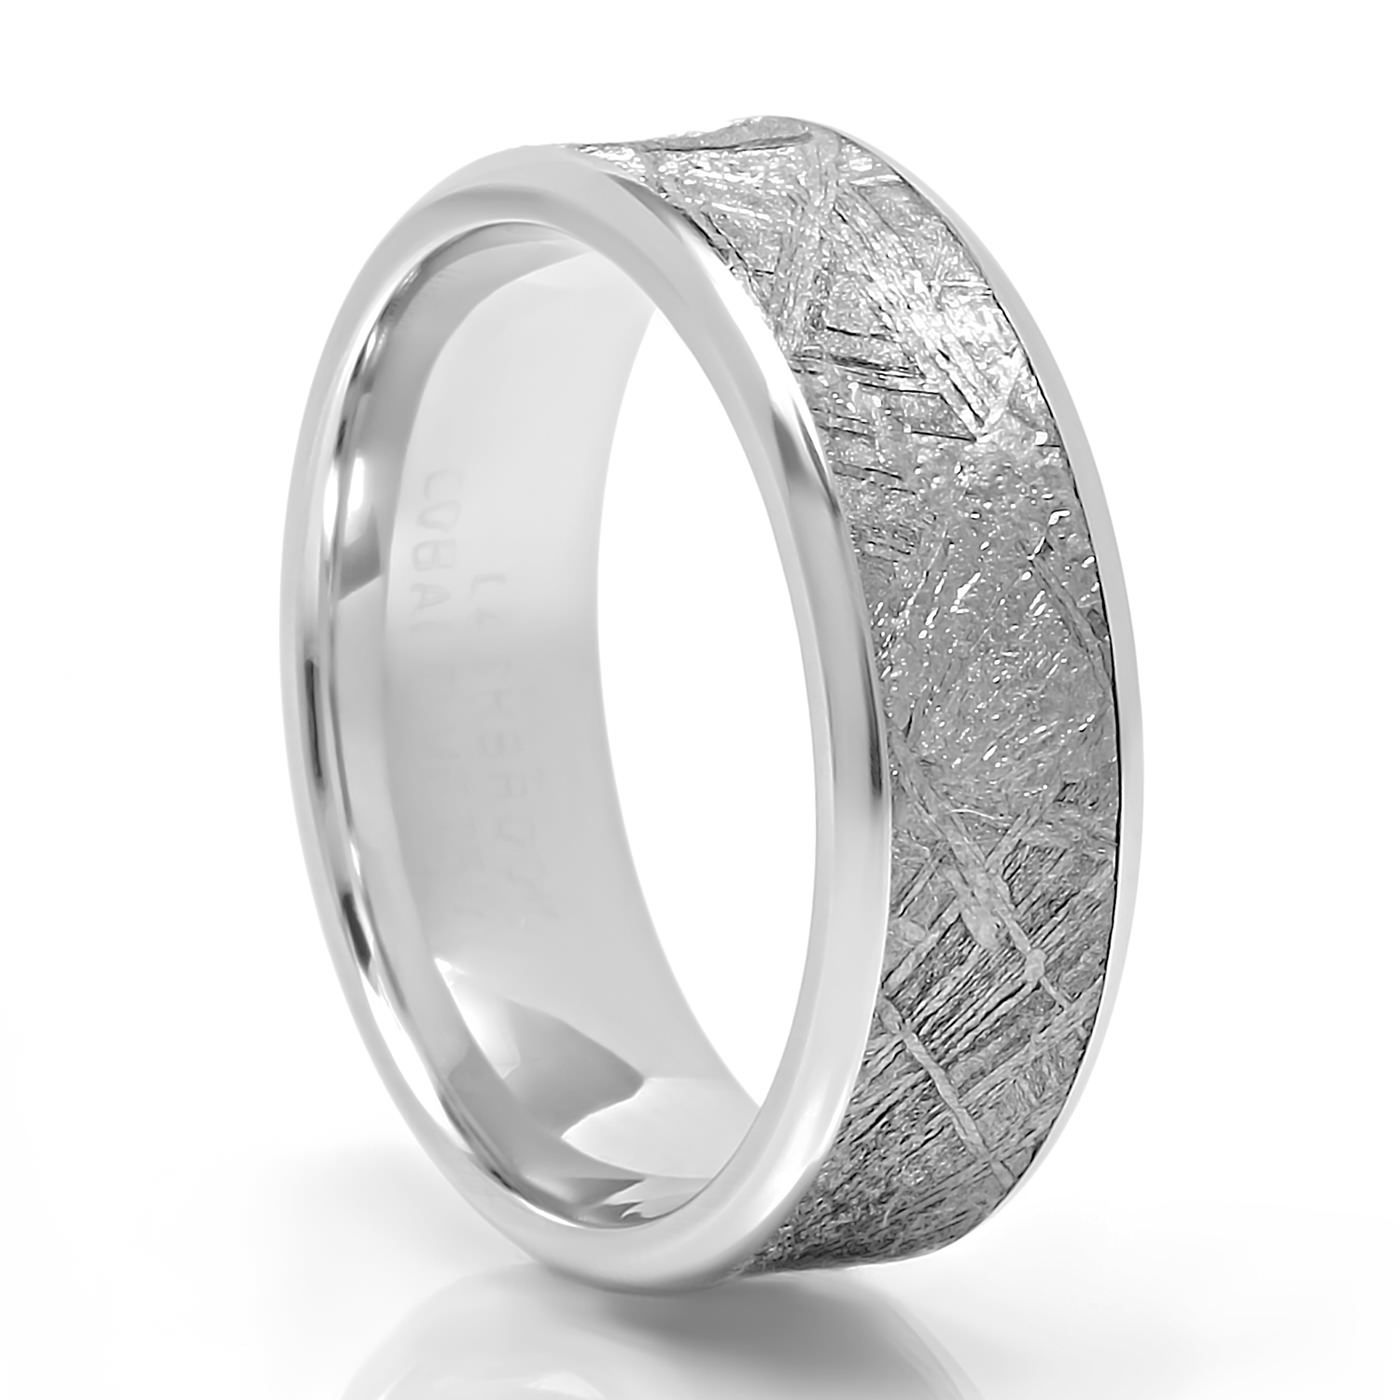 This is a picture of FUSION Cobalt & Meteorite Mens diamond wedding bands, Meteorite